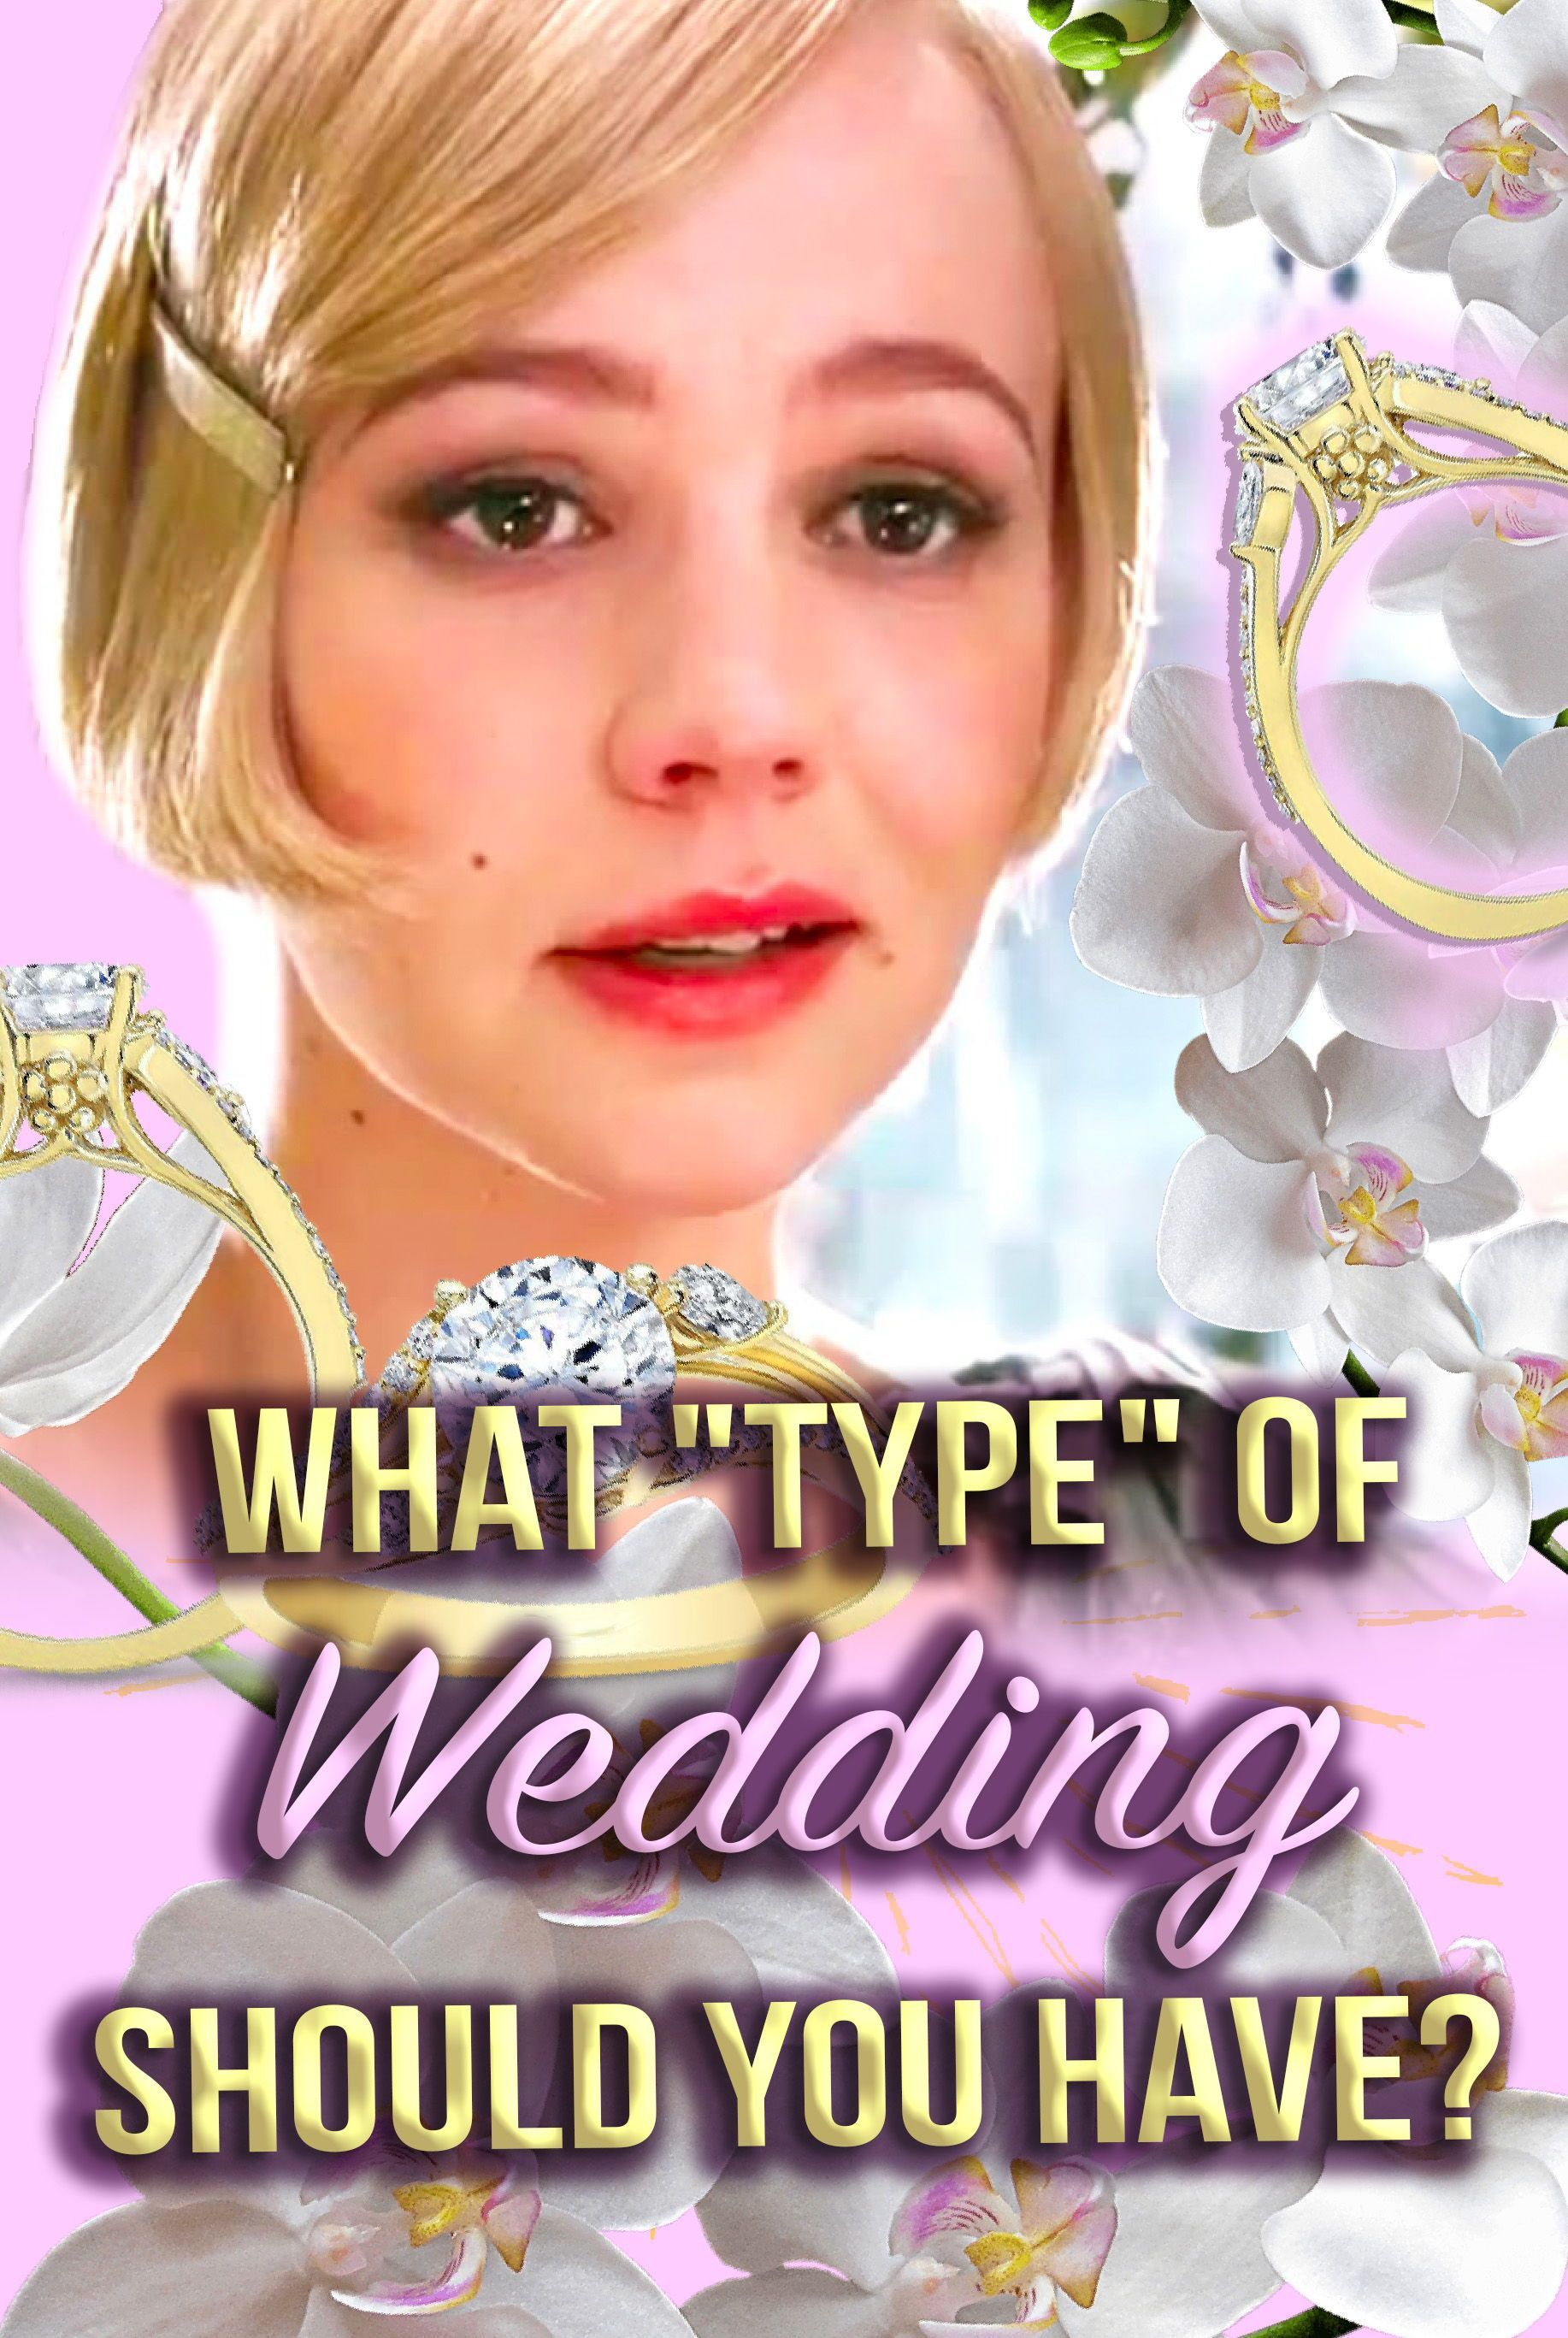 Personality Quiz What Type Of Wedding Best Suits Your Personality If Youre Dreaming About Your Big Day Wedding Quiz Buzzfeed Wedding Quiz Wedding Dress Quiz